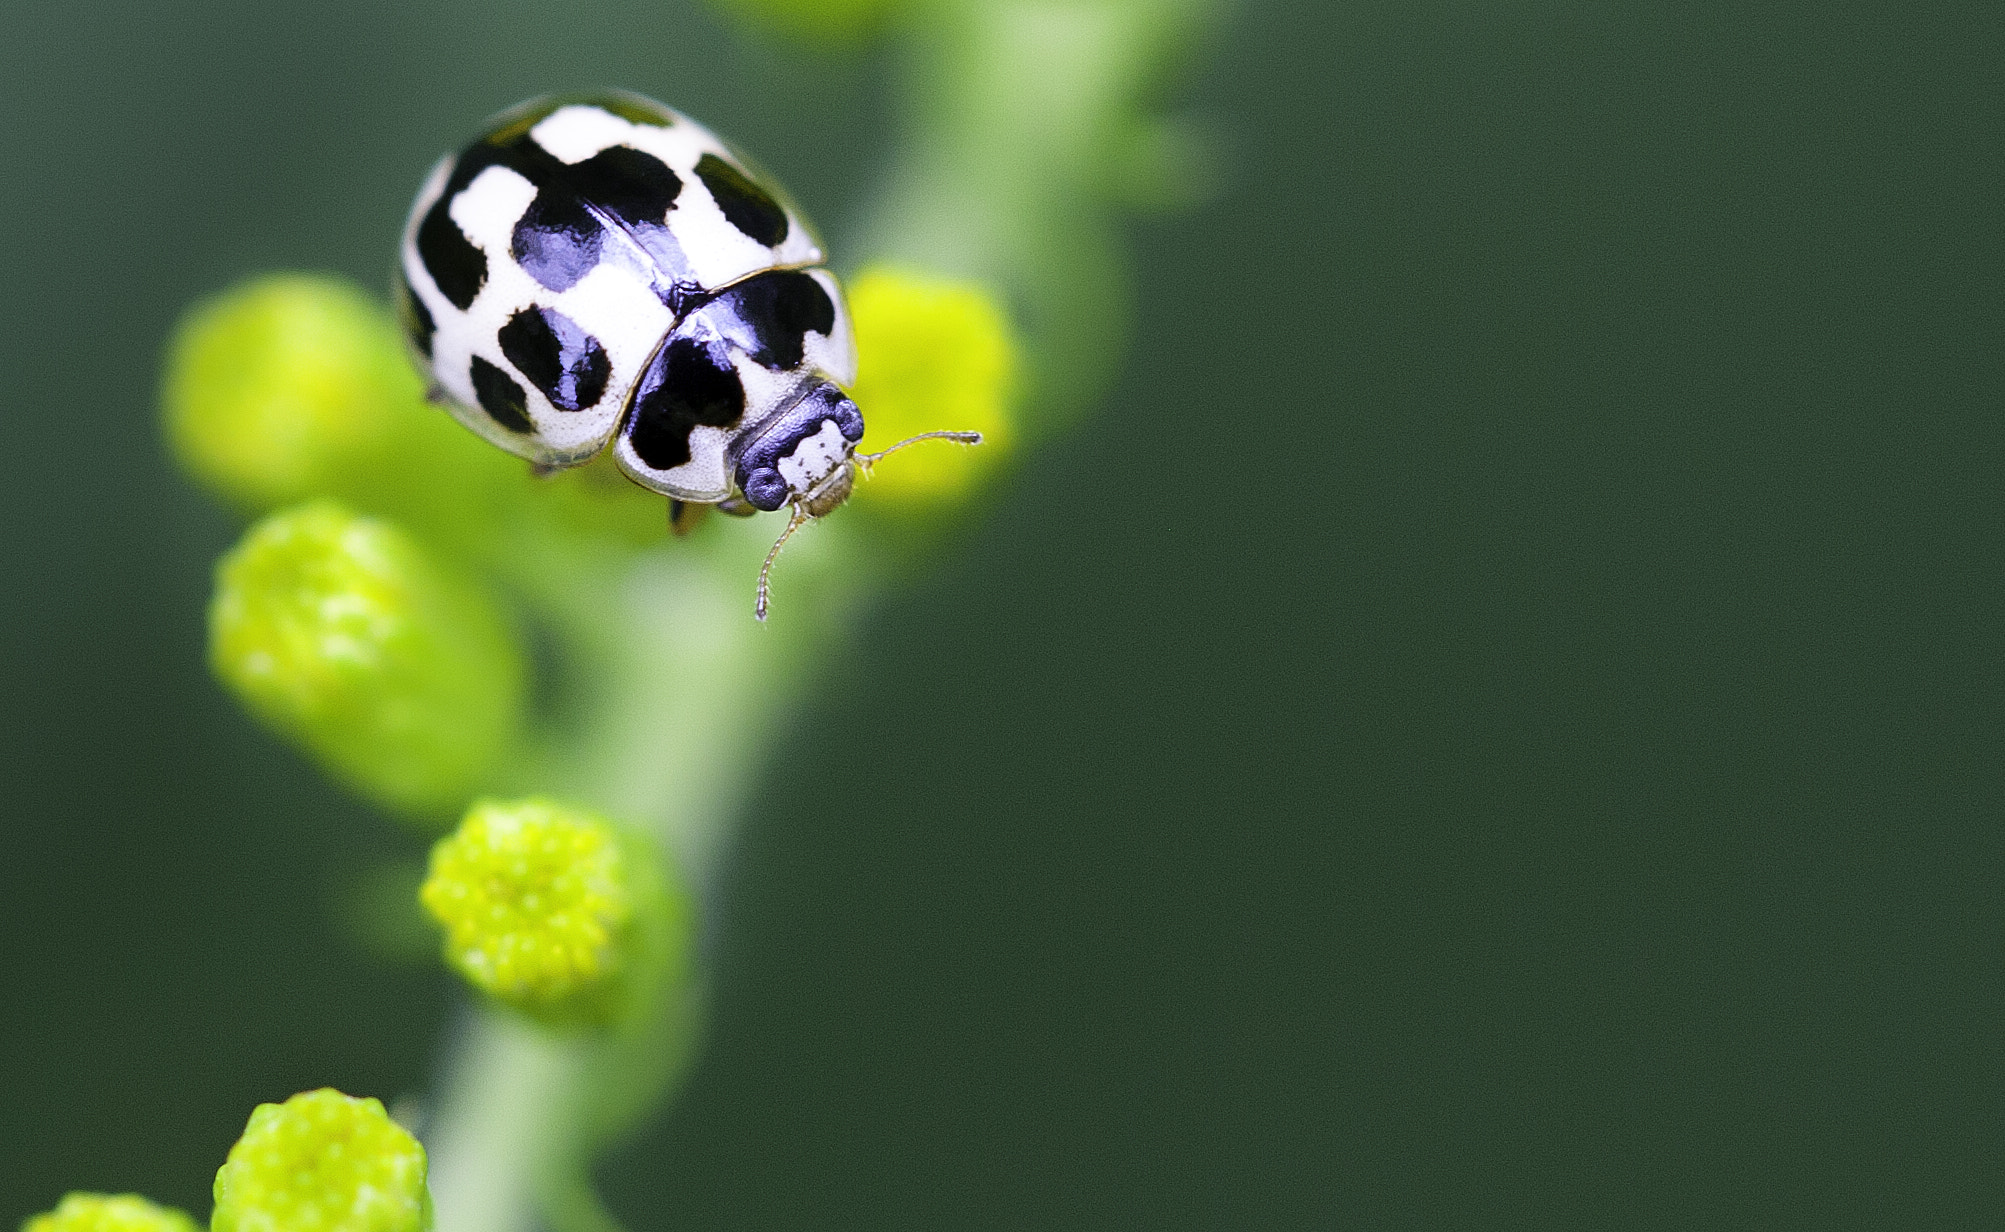 Photograph Ladybug by keith Roselle on 500px